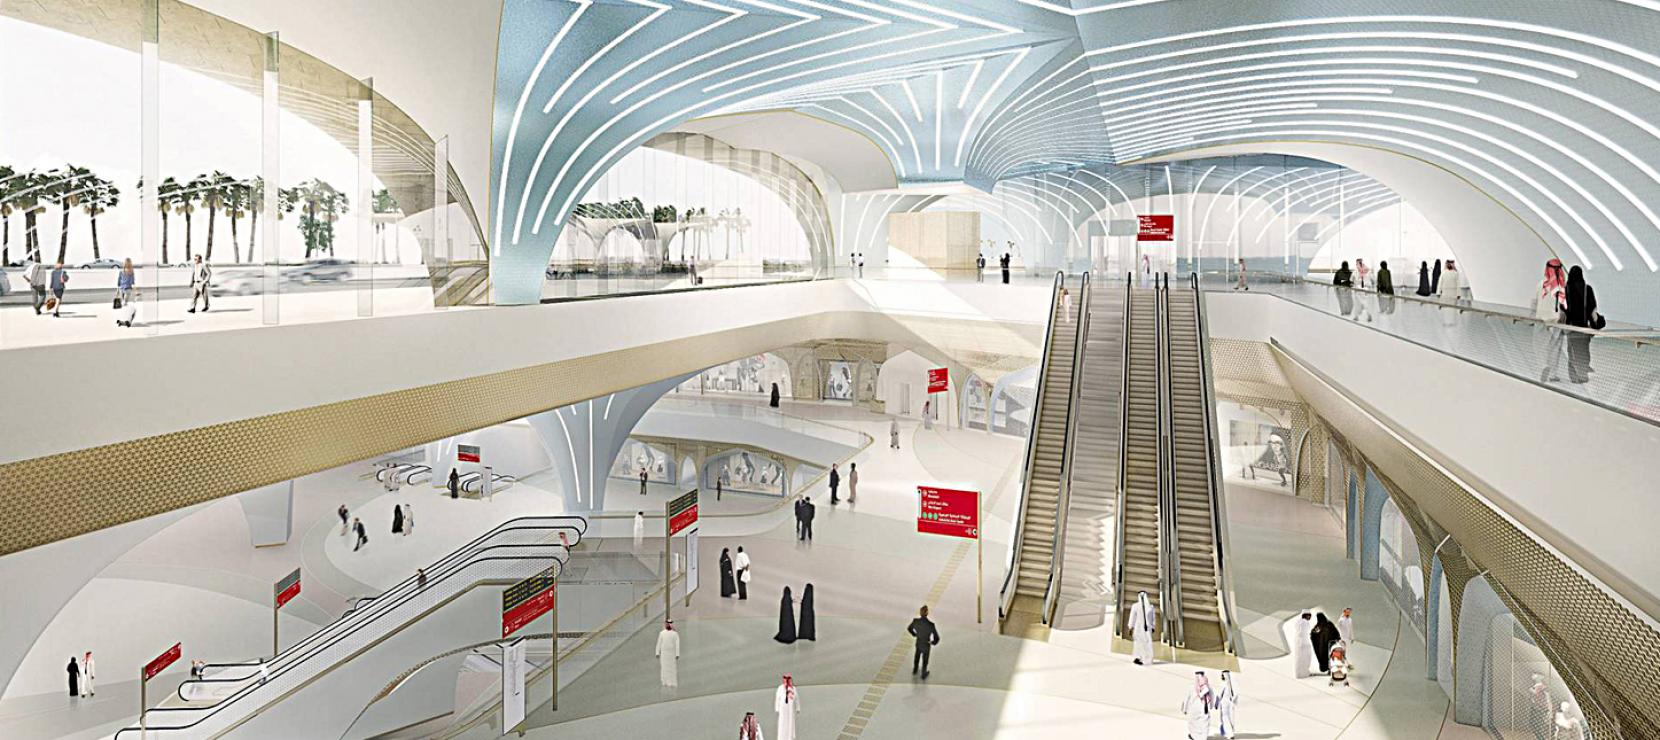 6 More Doha Metro Stations